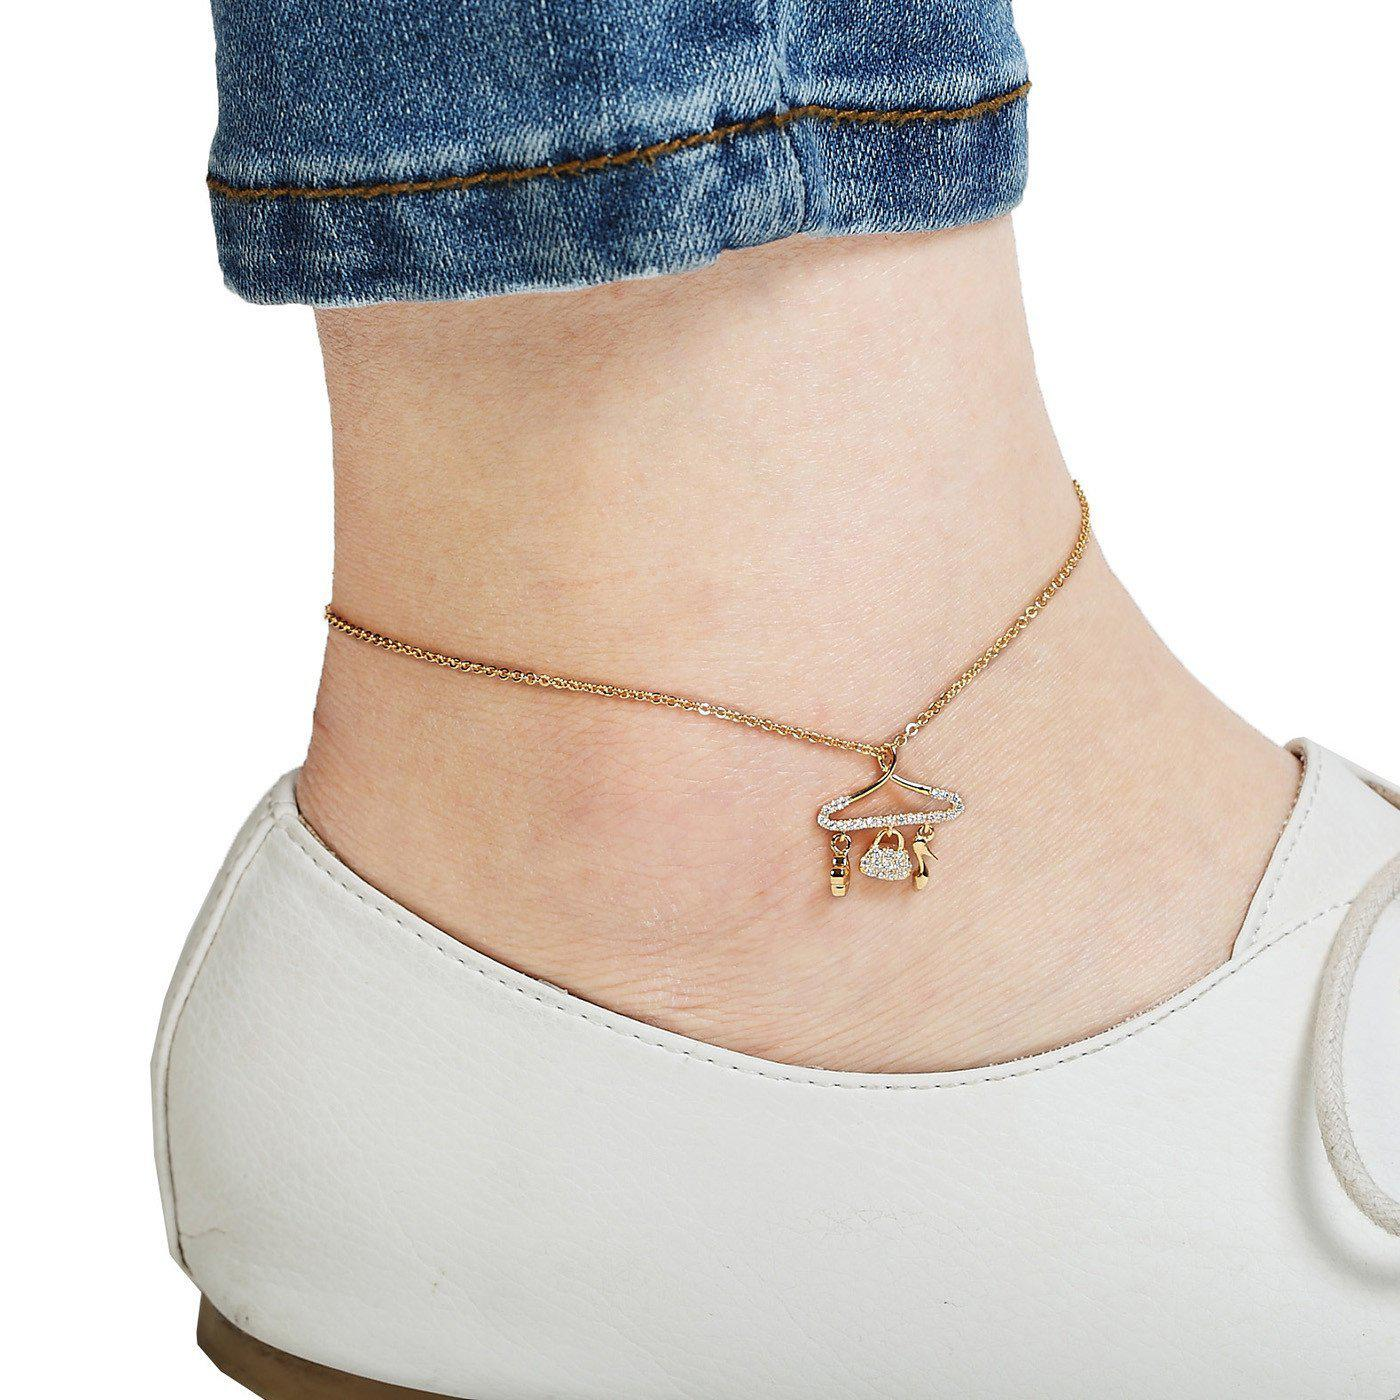 Stylista Gold Plated Anklets-Blinglane